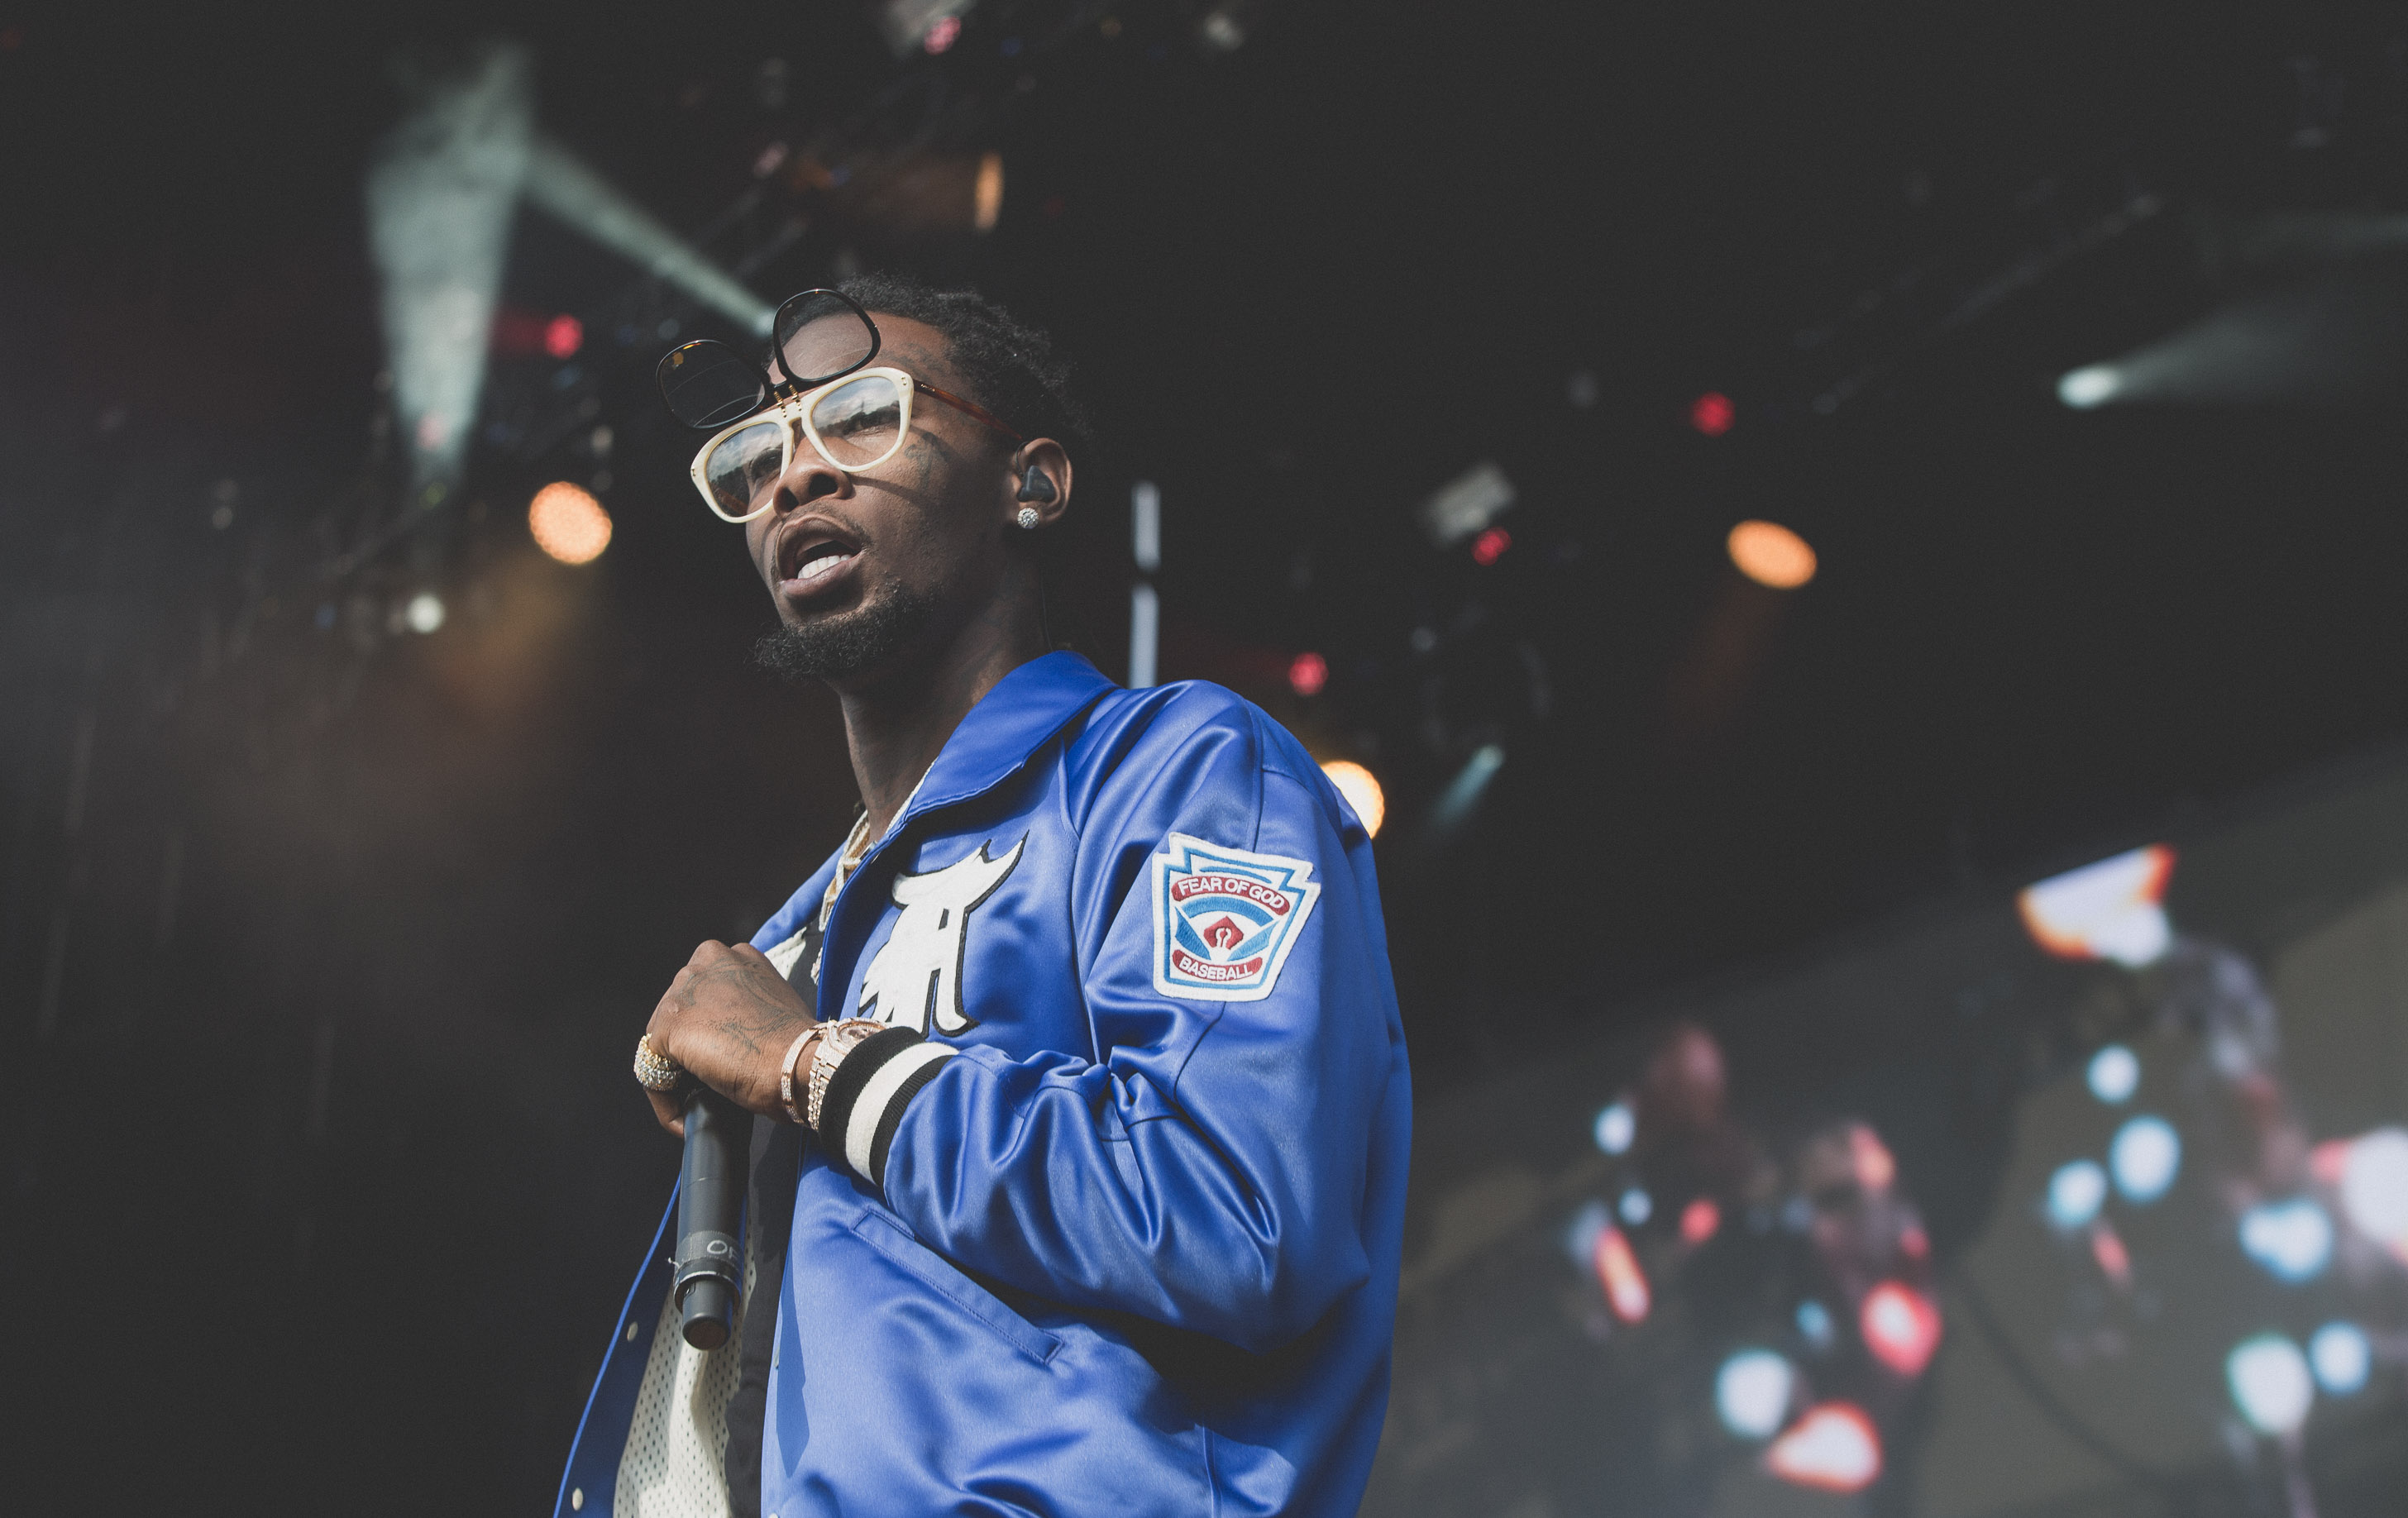 Offset Is Getting His Own Car Show On New Streaming Network Quibi